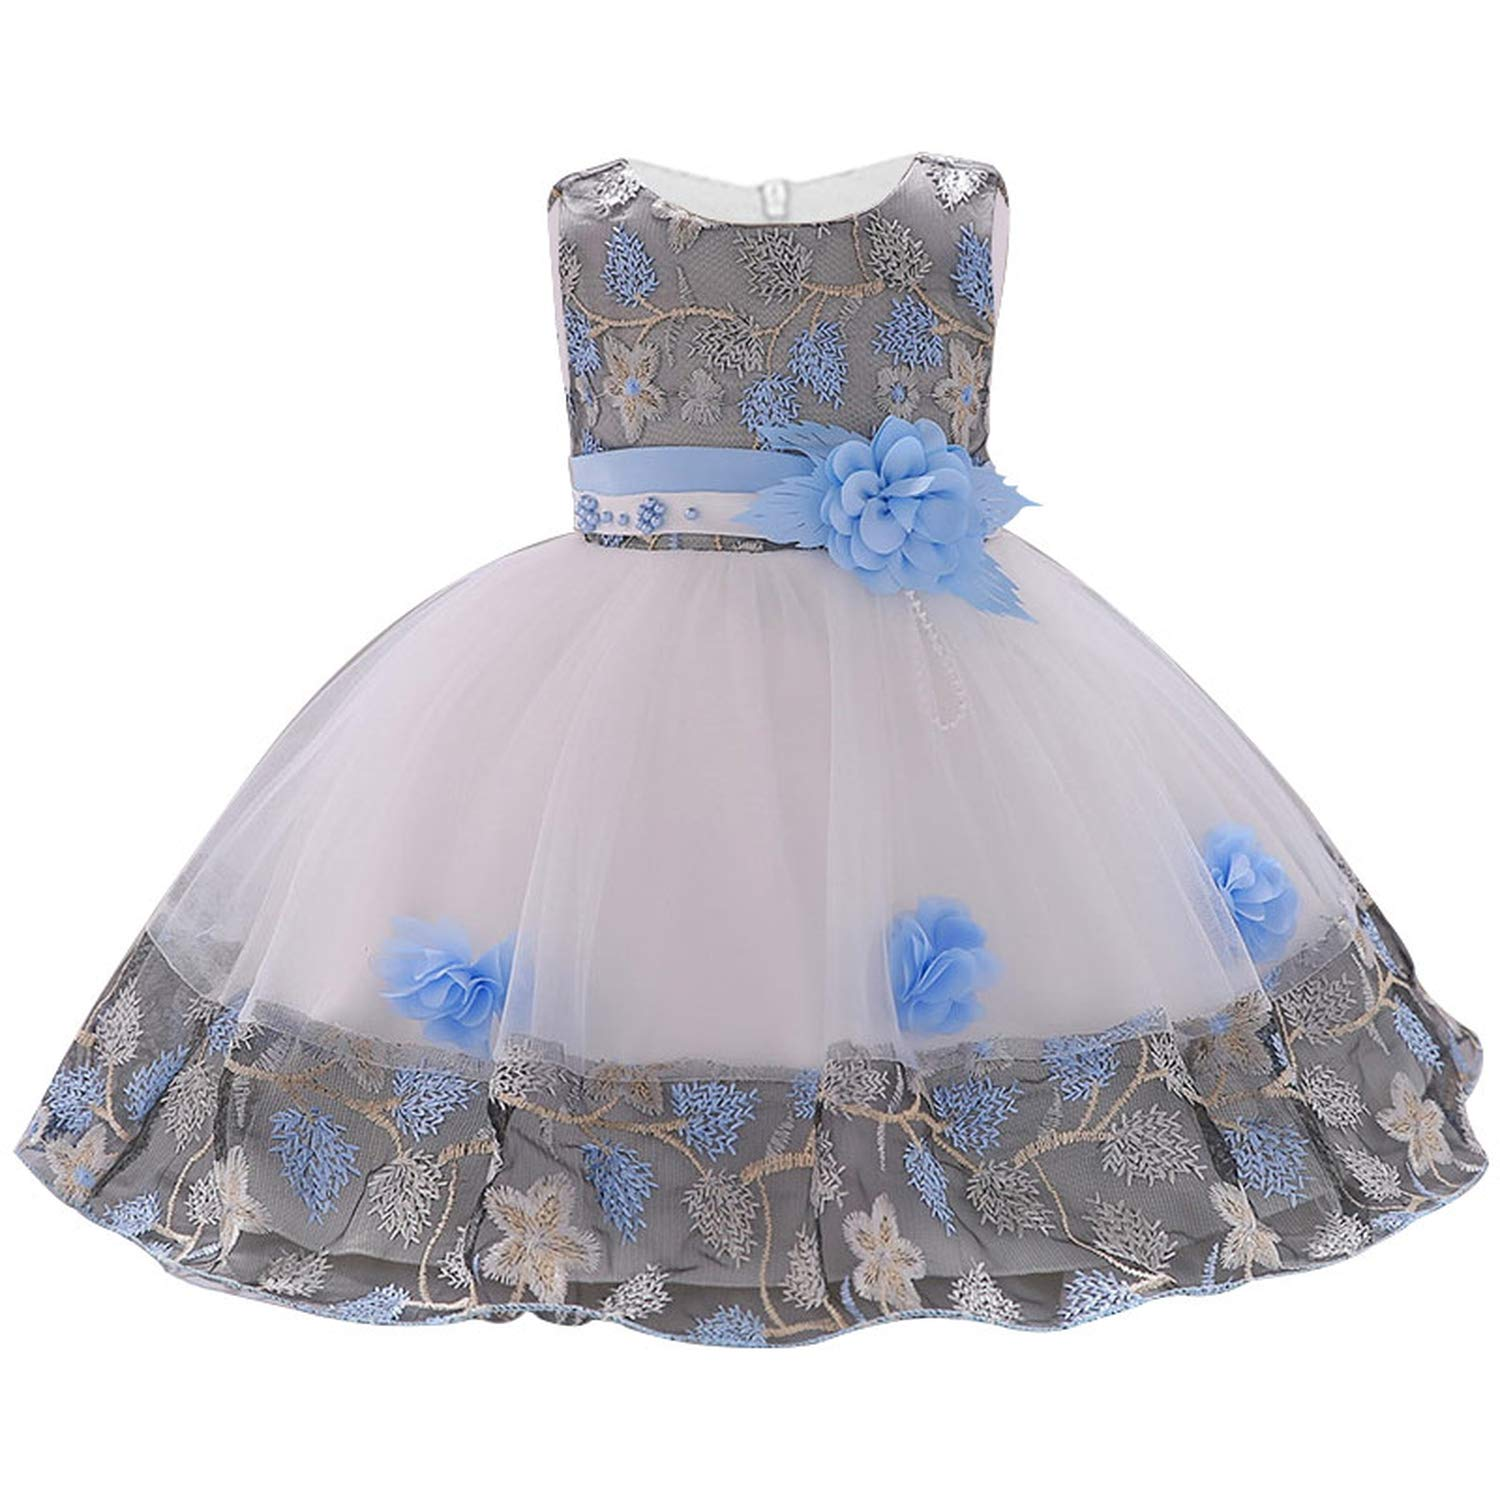 Children Princess Party Kids Dresses for Girls Cake Tutu Lace Flower Girls 1-8 Yrs Baby Girls Clothes Kids Wedding Party Dress,Sky Blue,6